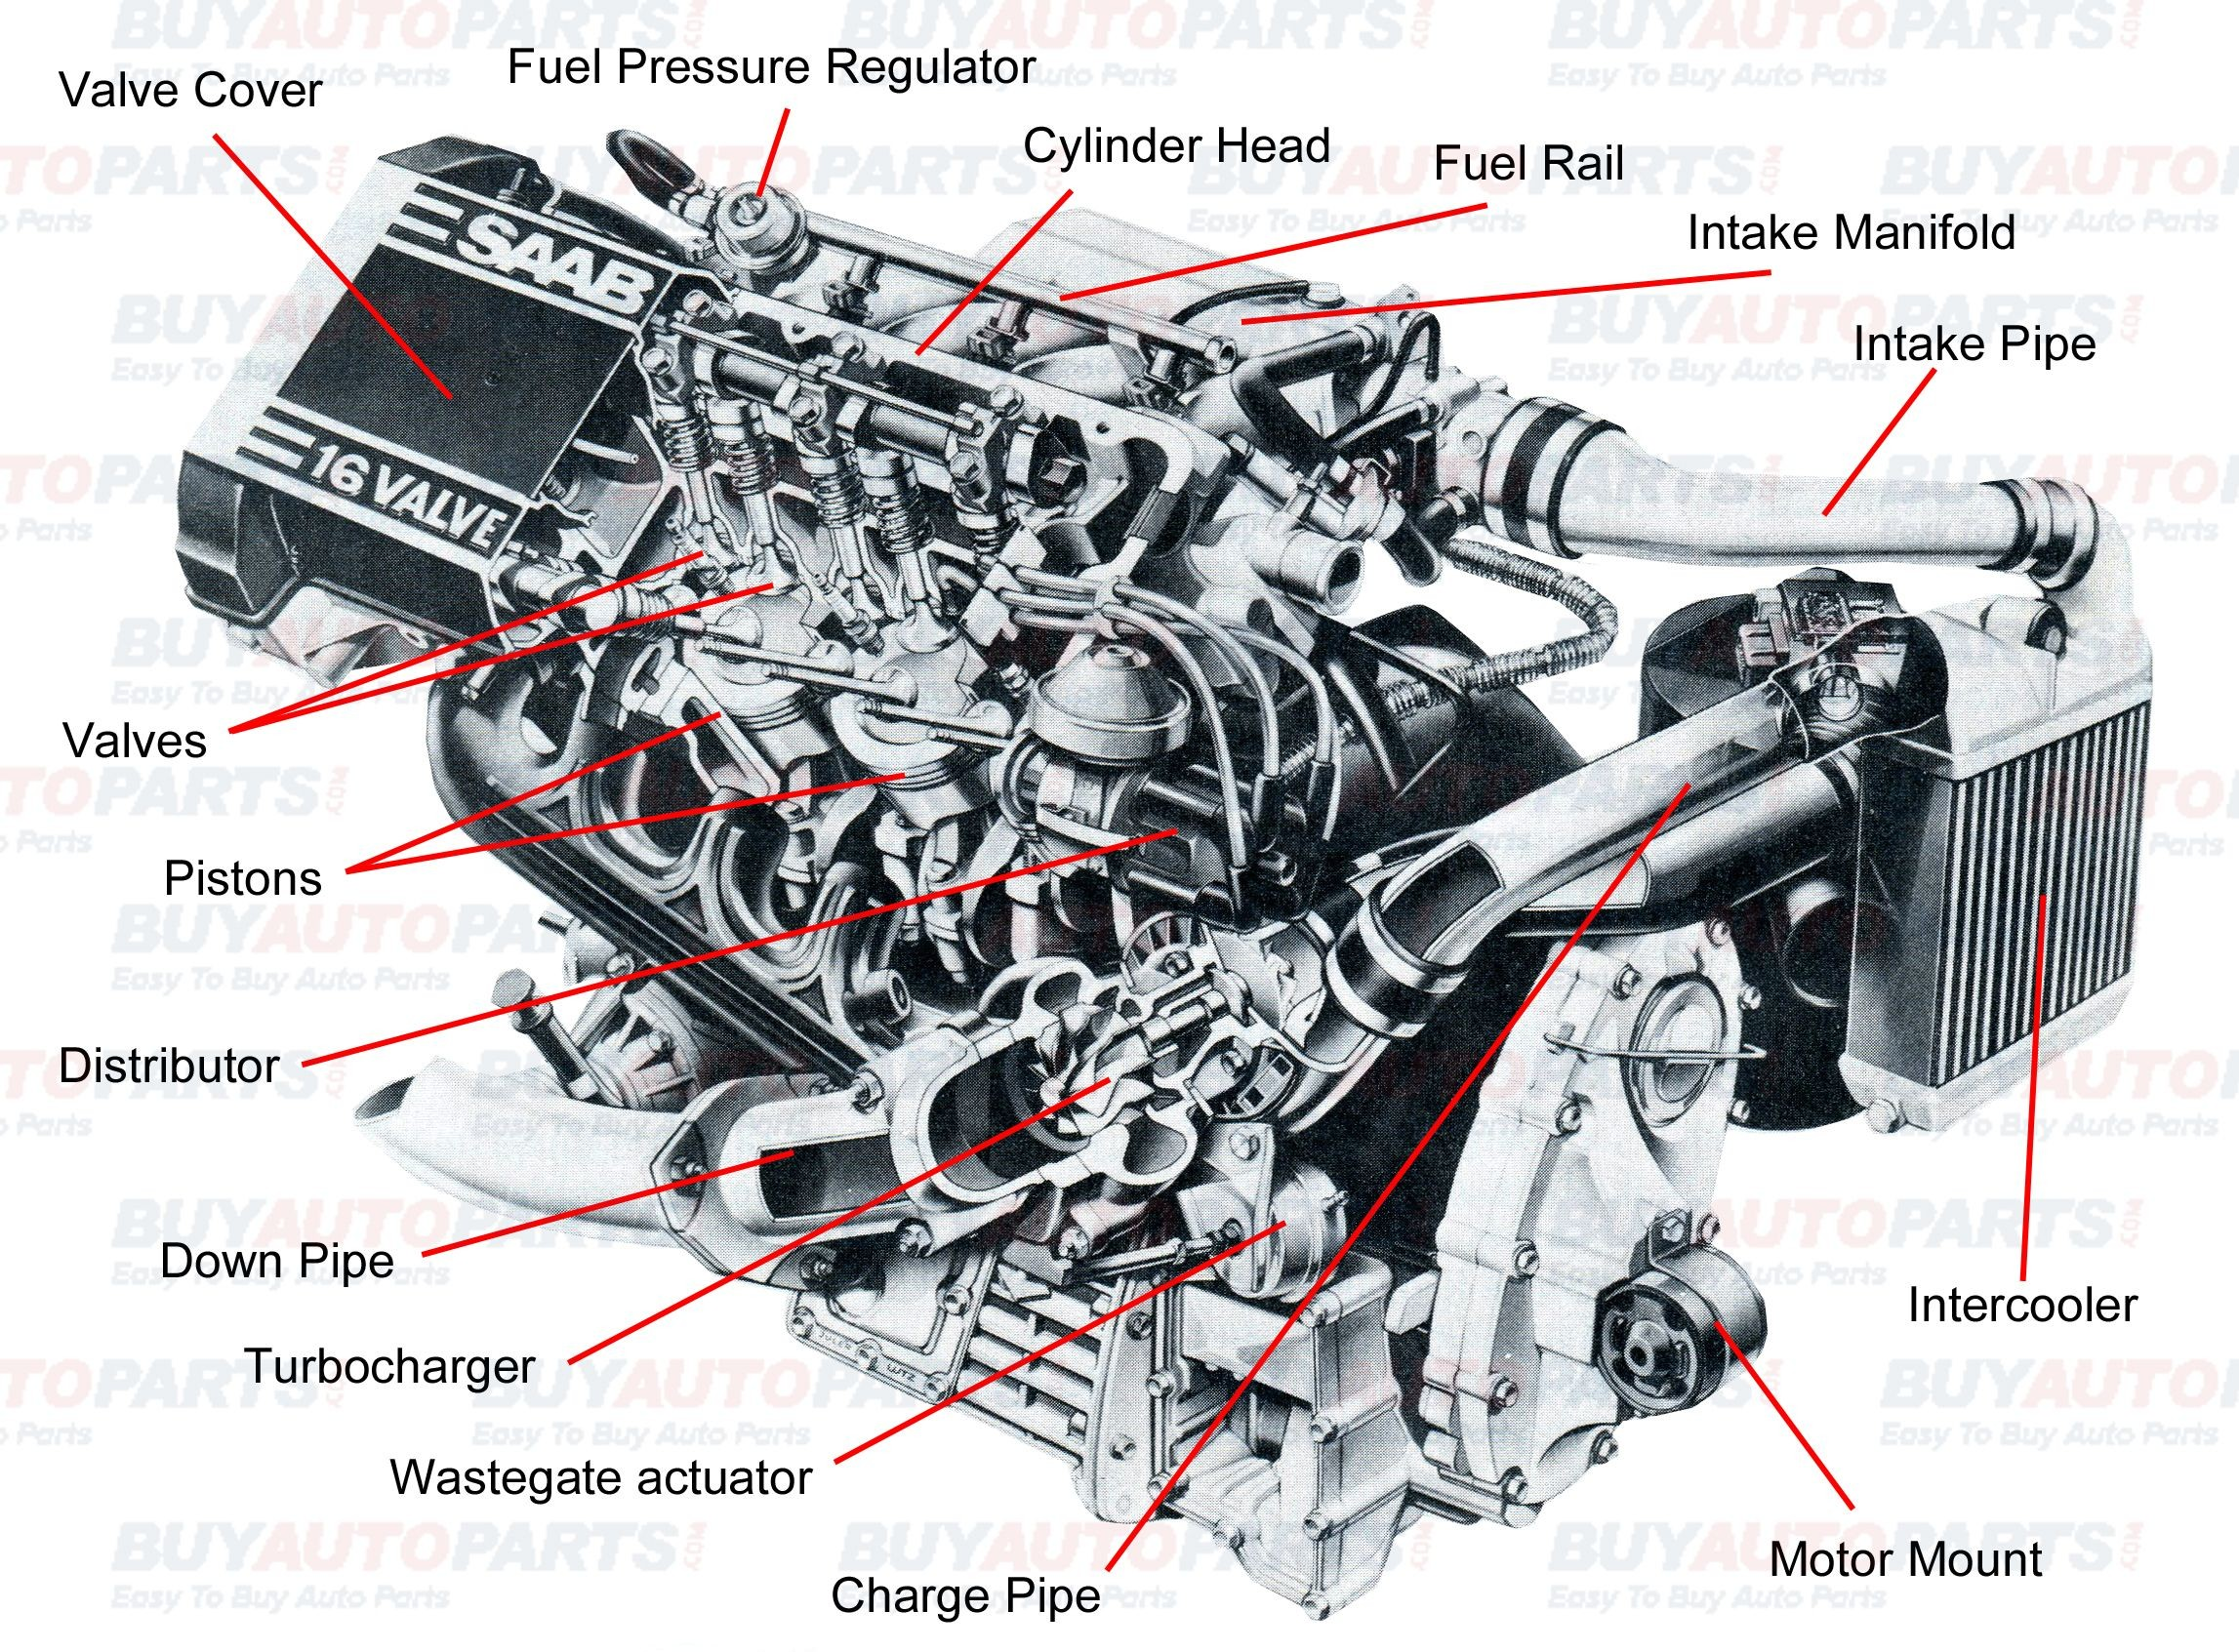 Parts Under the Hood Of A Car Diagram Pin by Jimmiejanet Testellamwfz On What Does An Engine with Turbo Of Parts Under the Hood Of A Car Diagram